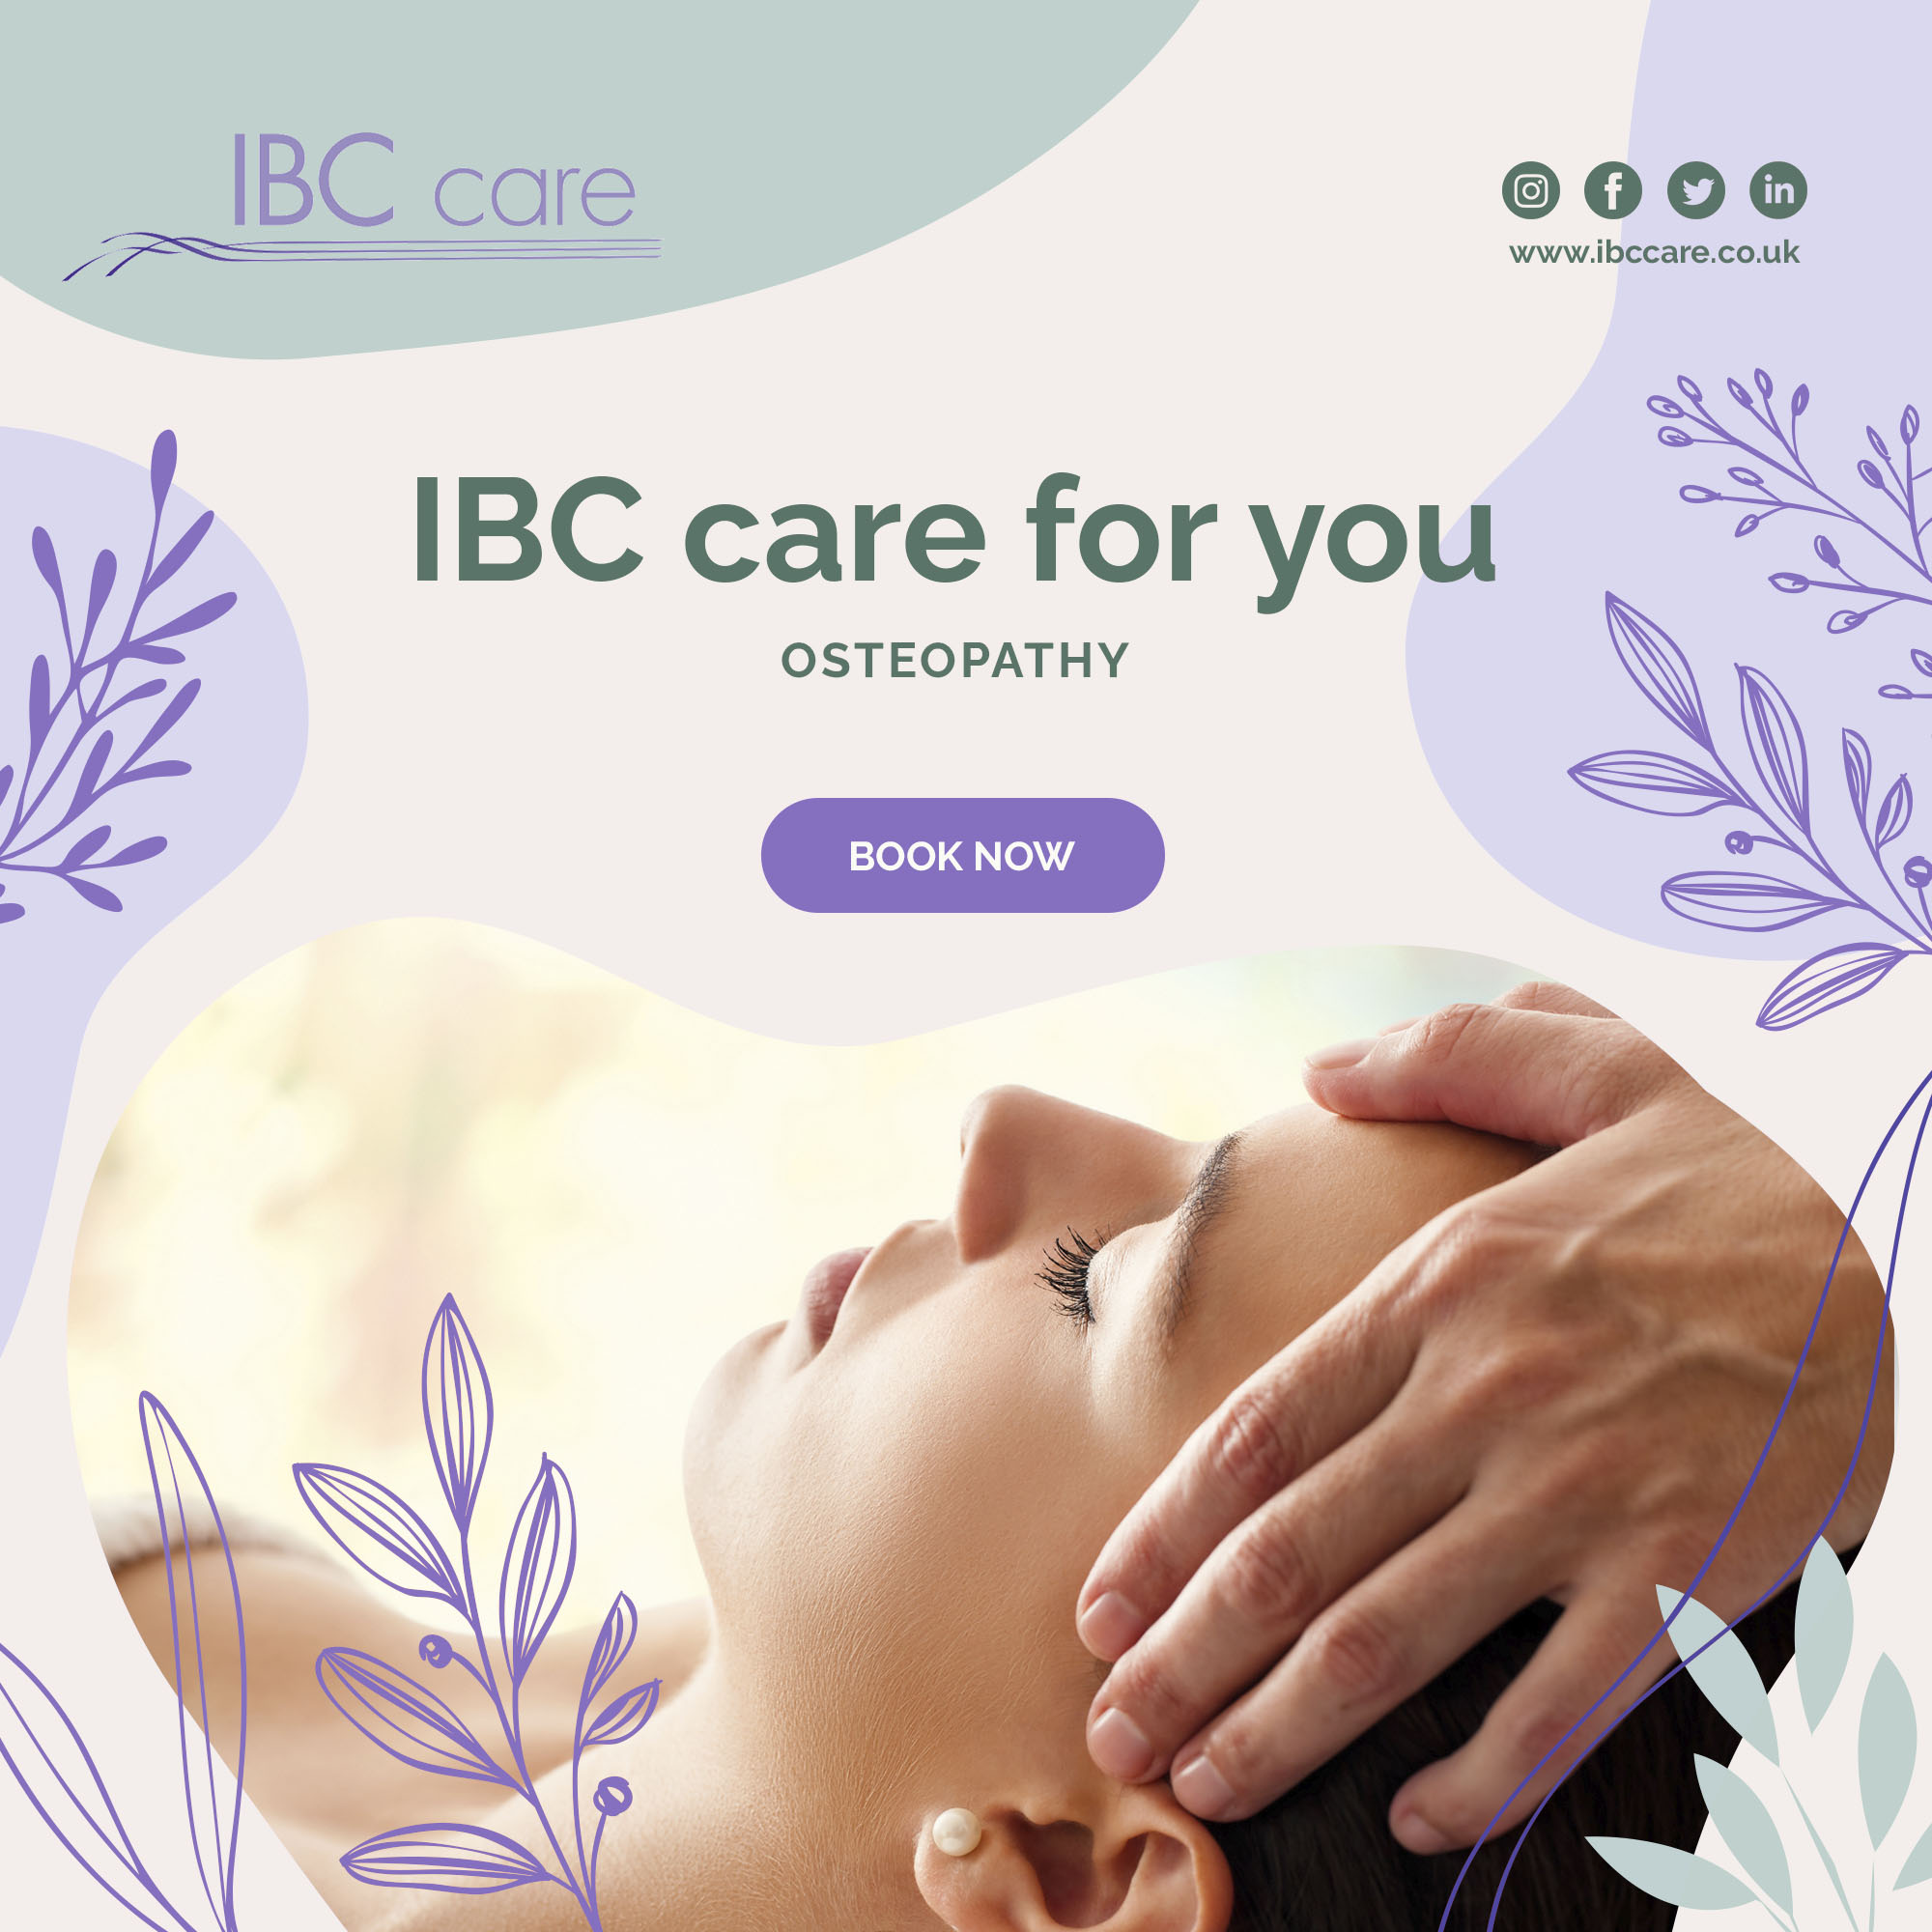 IBC care for you